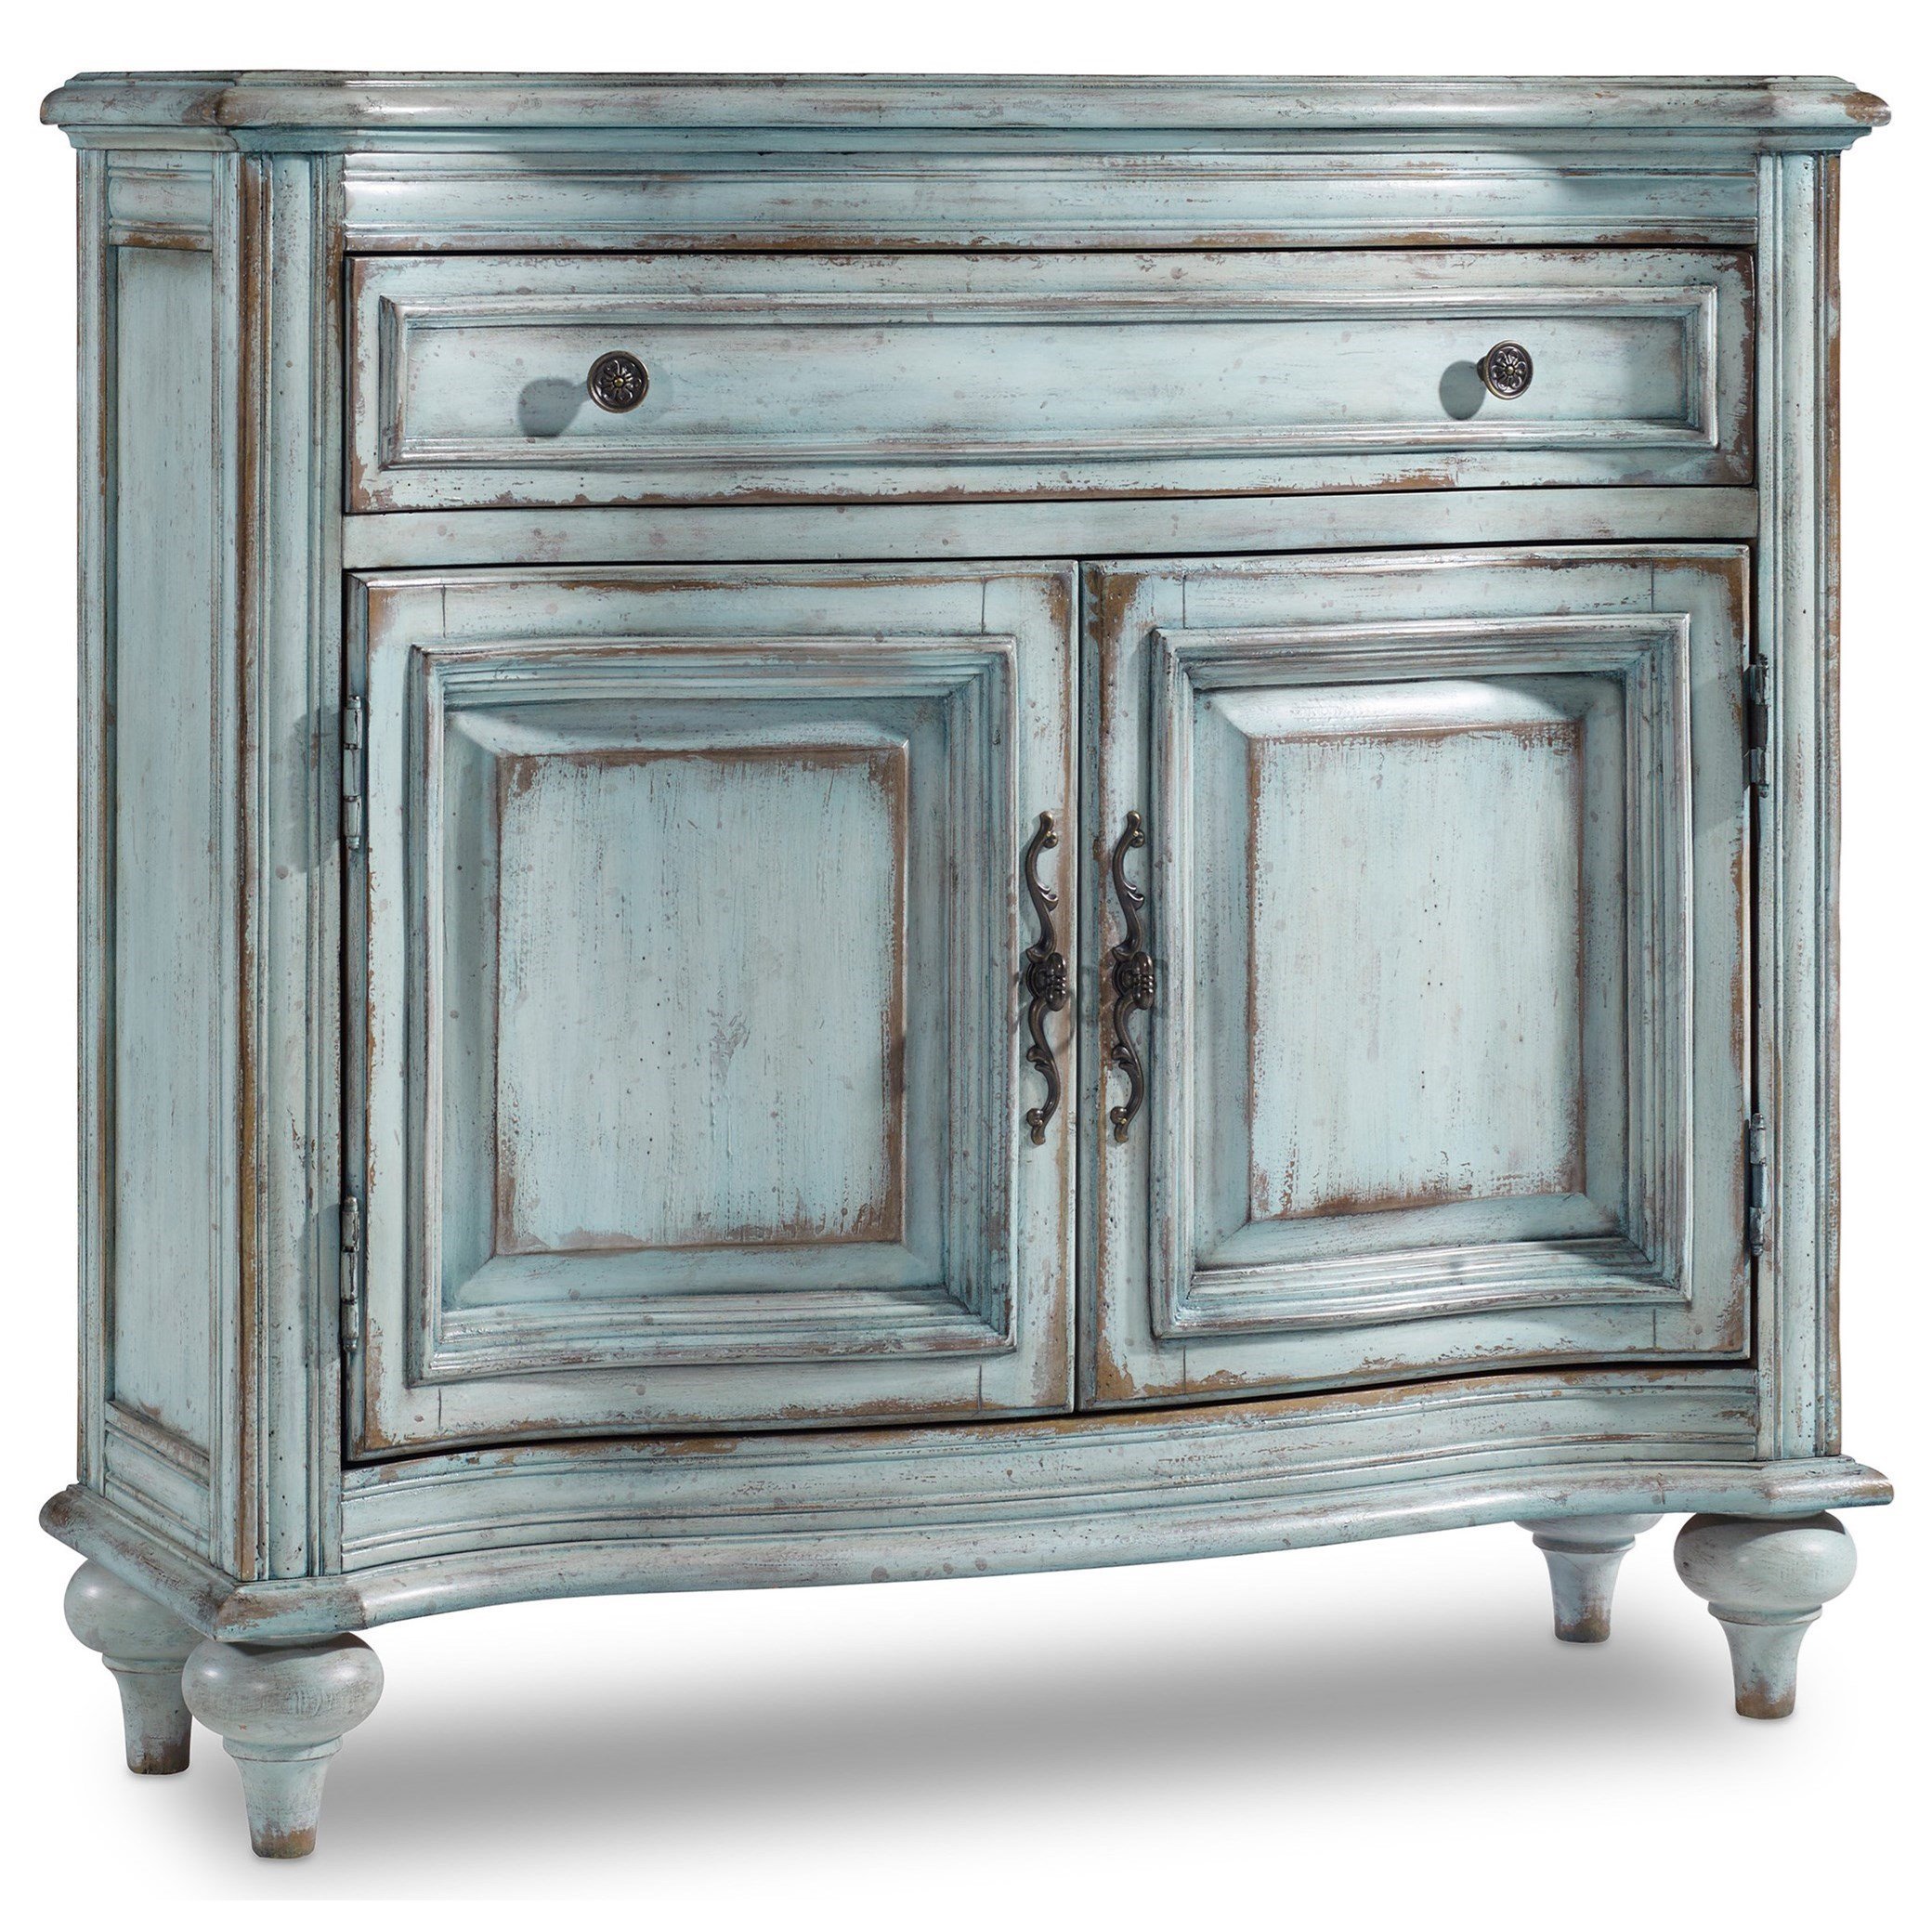 1-Drawer 2-Door Chest in Distressed Blue Finish